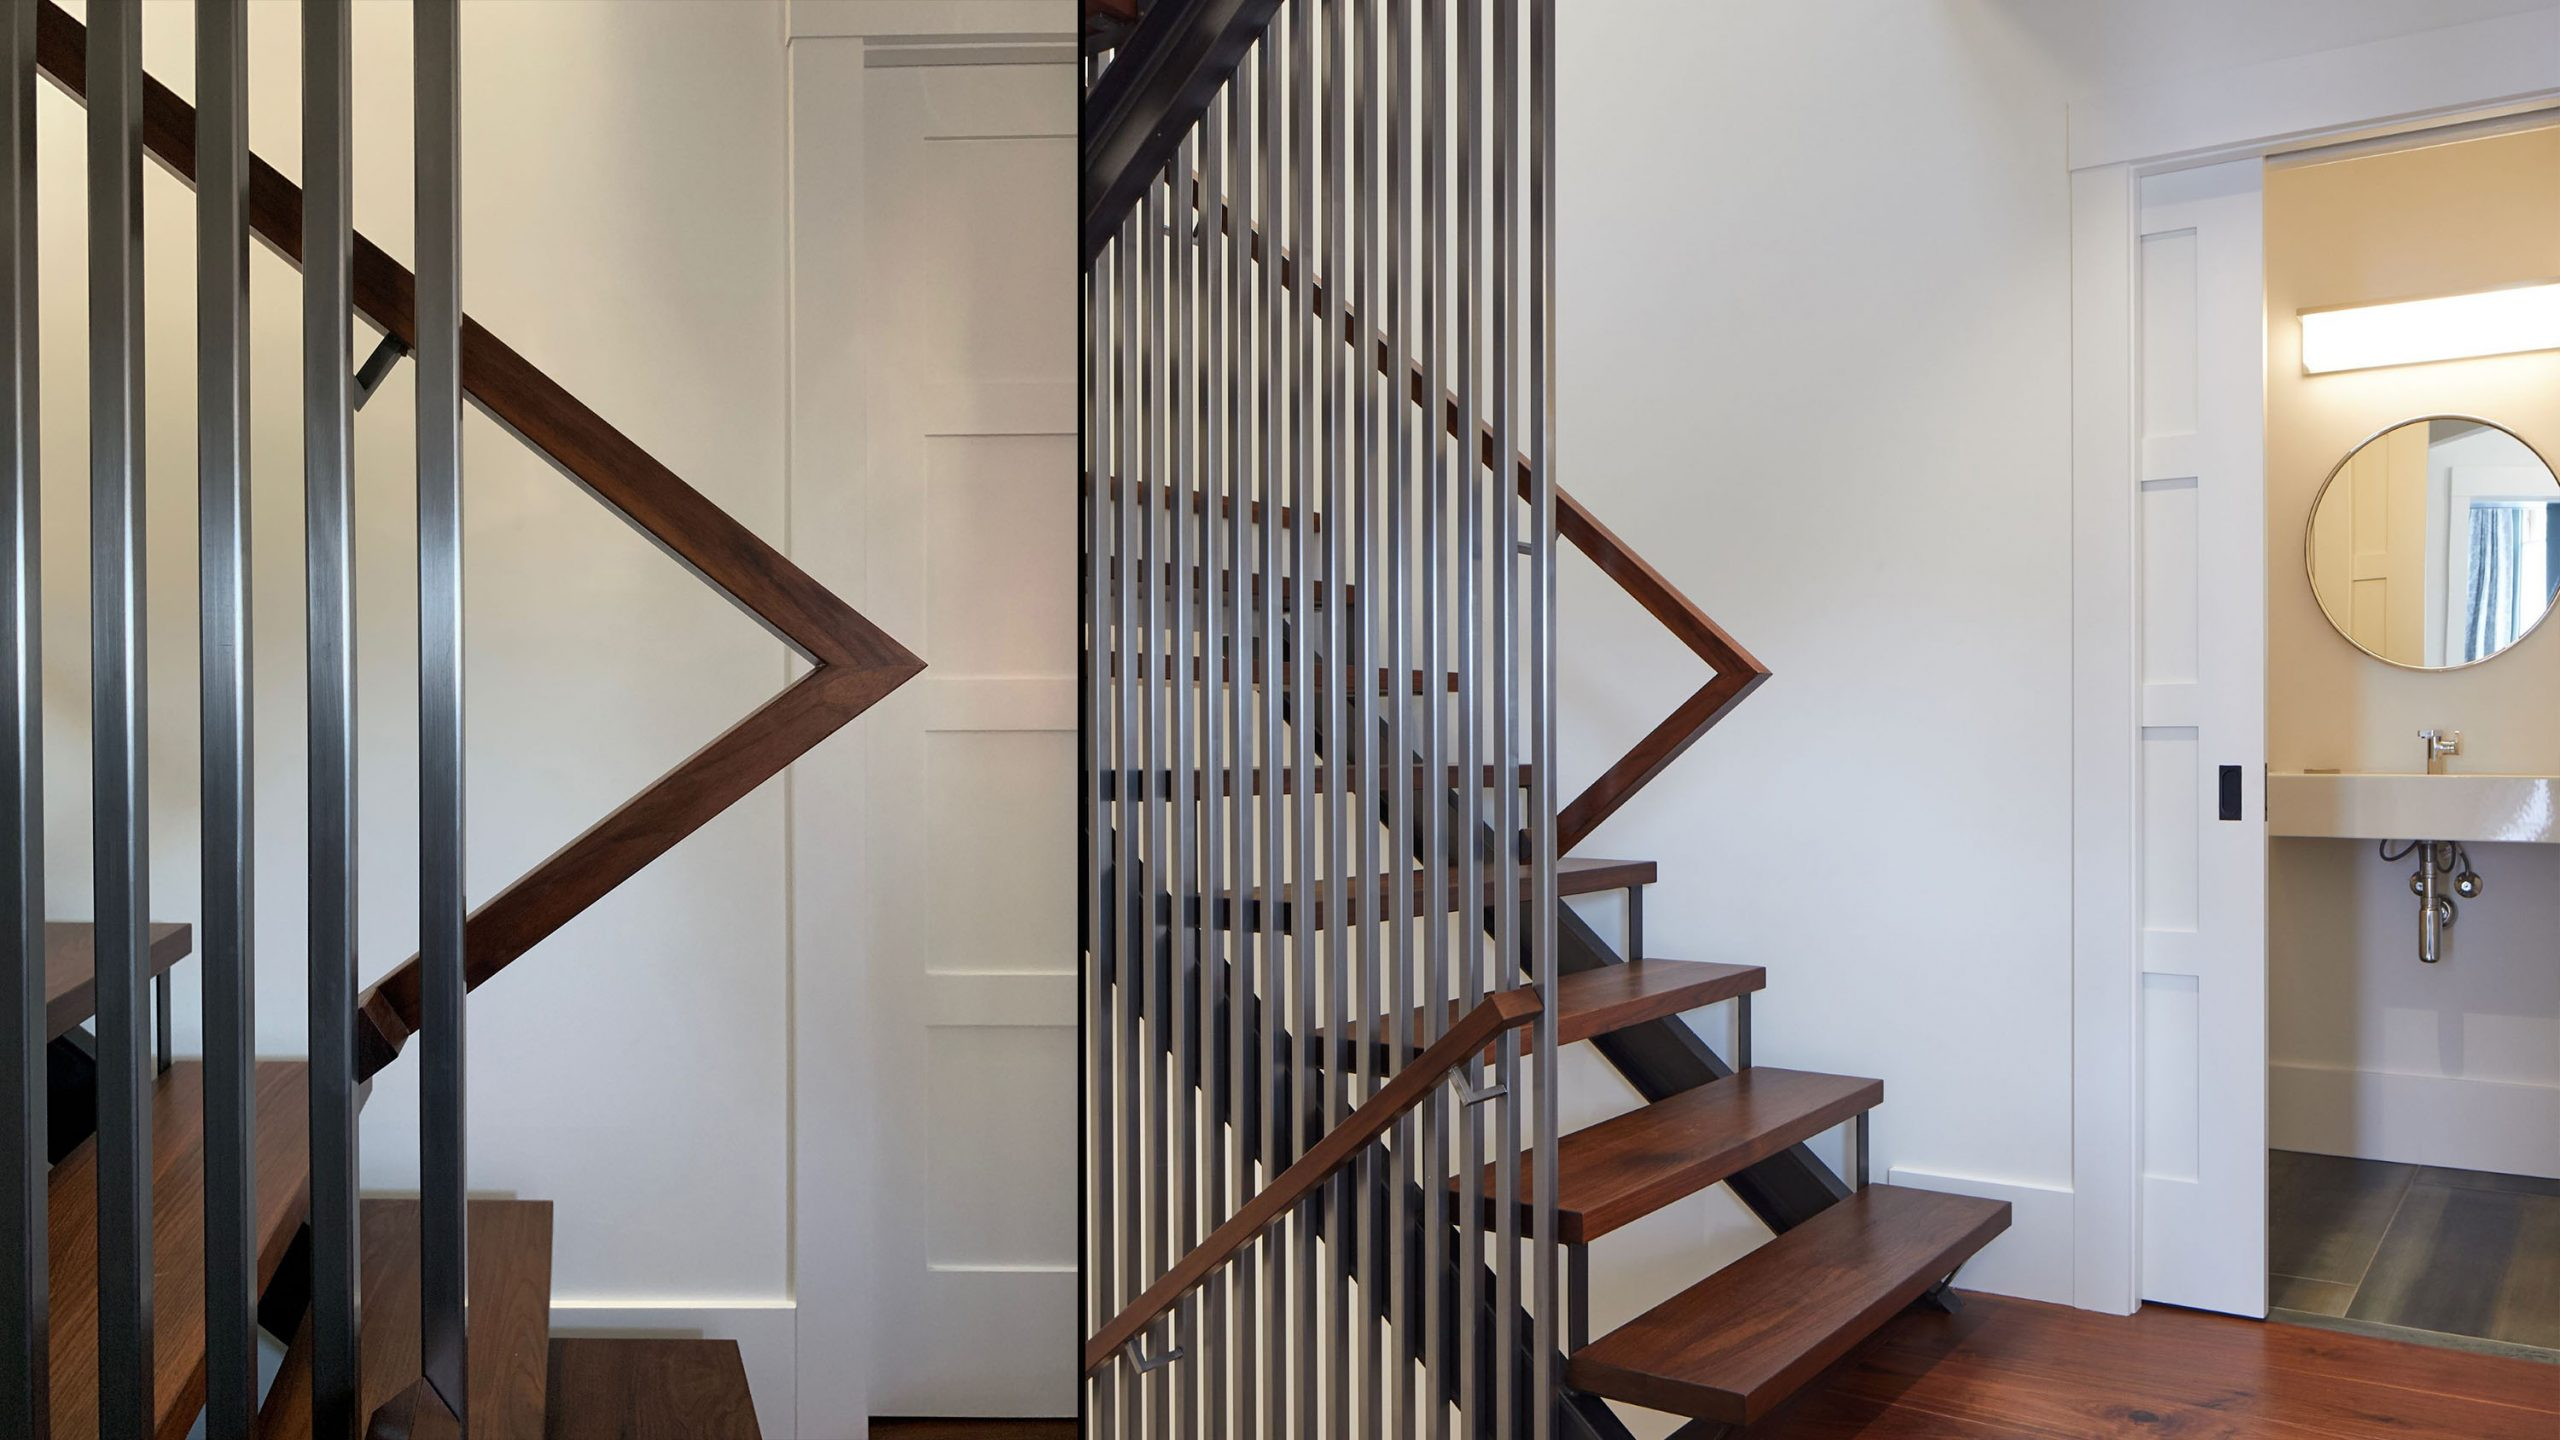 Farmhouse Interior Design Sonoma County 3 metal and wood staircase in home remodel